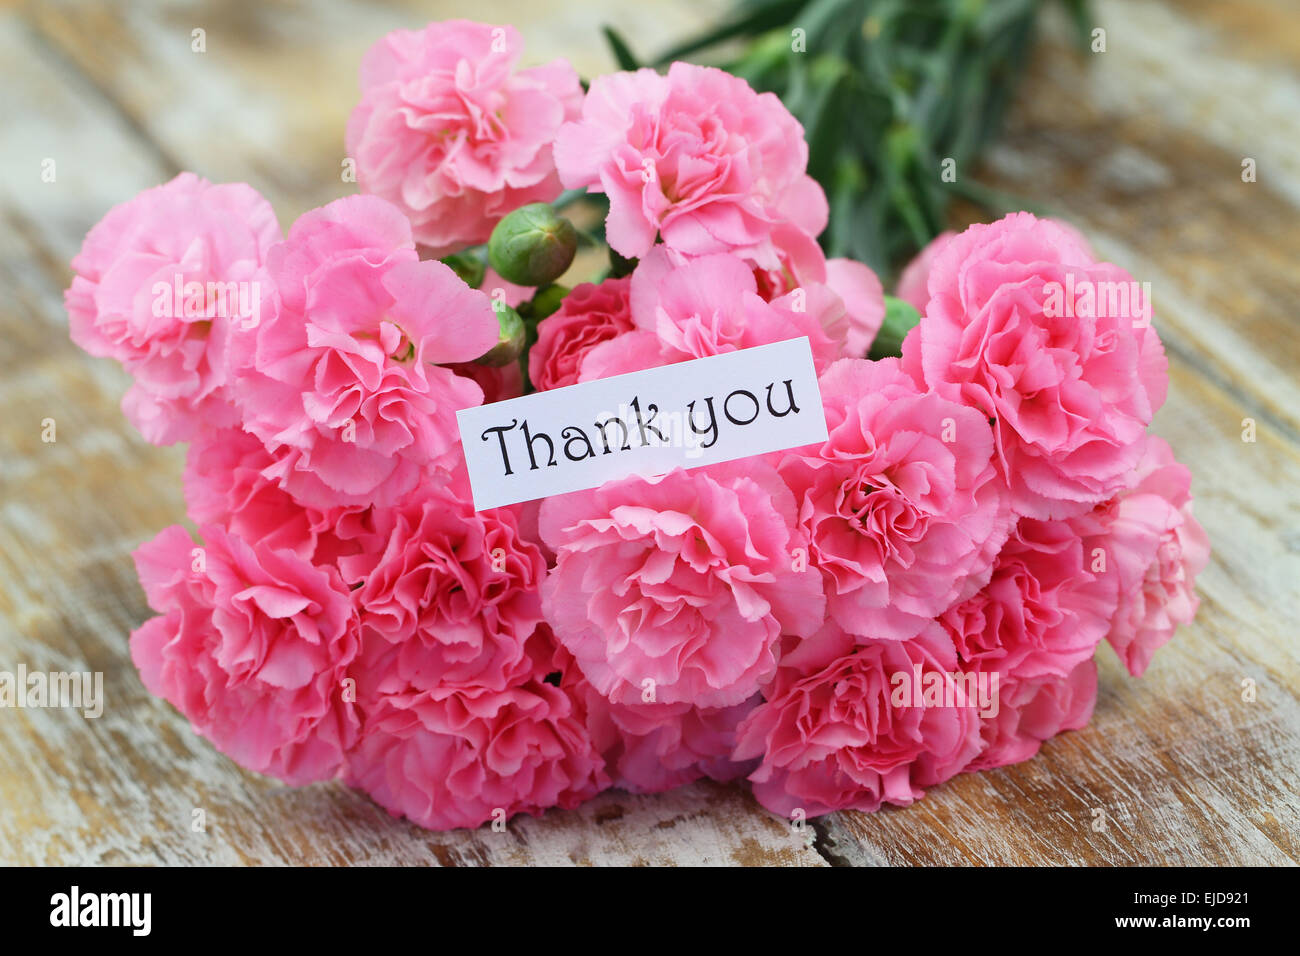 Thank you card with pink carnation flowers stock photo 80197769 alamy thank you card with pink carnation flowers izmirmasajfo